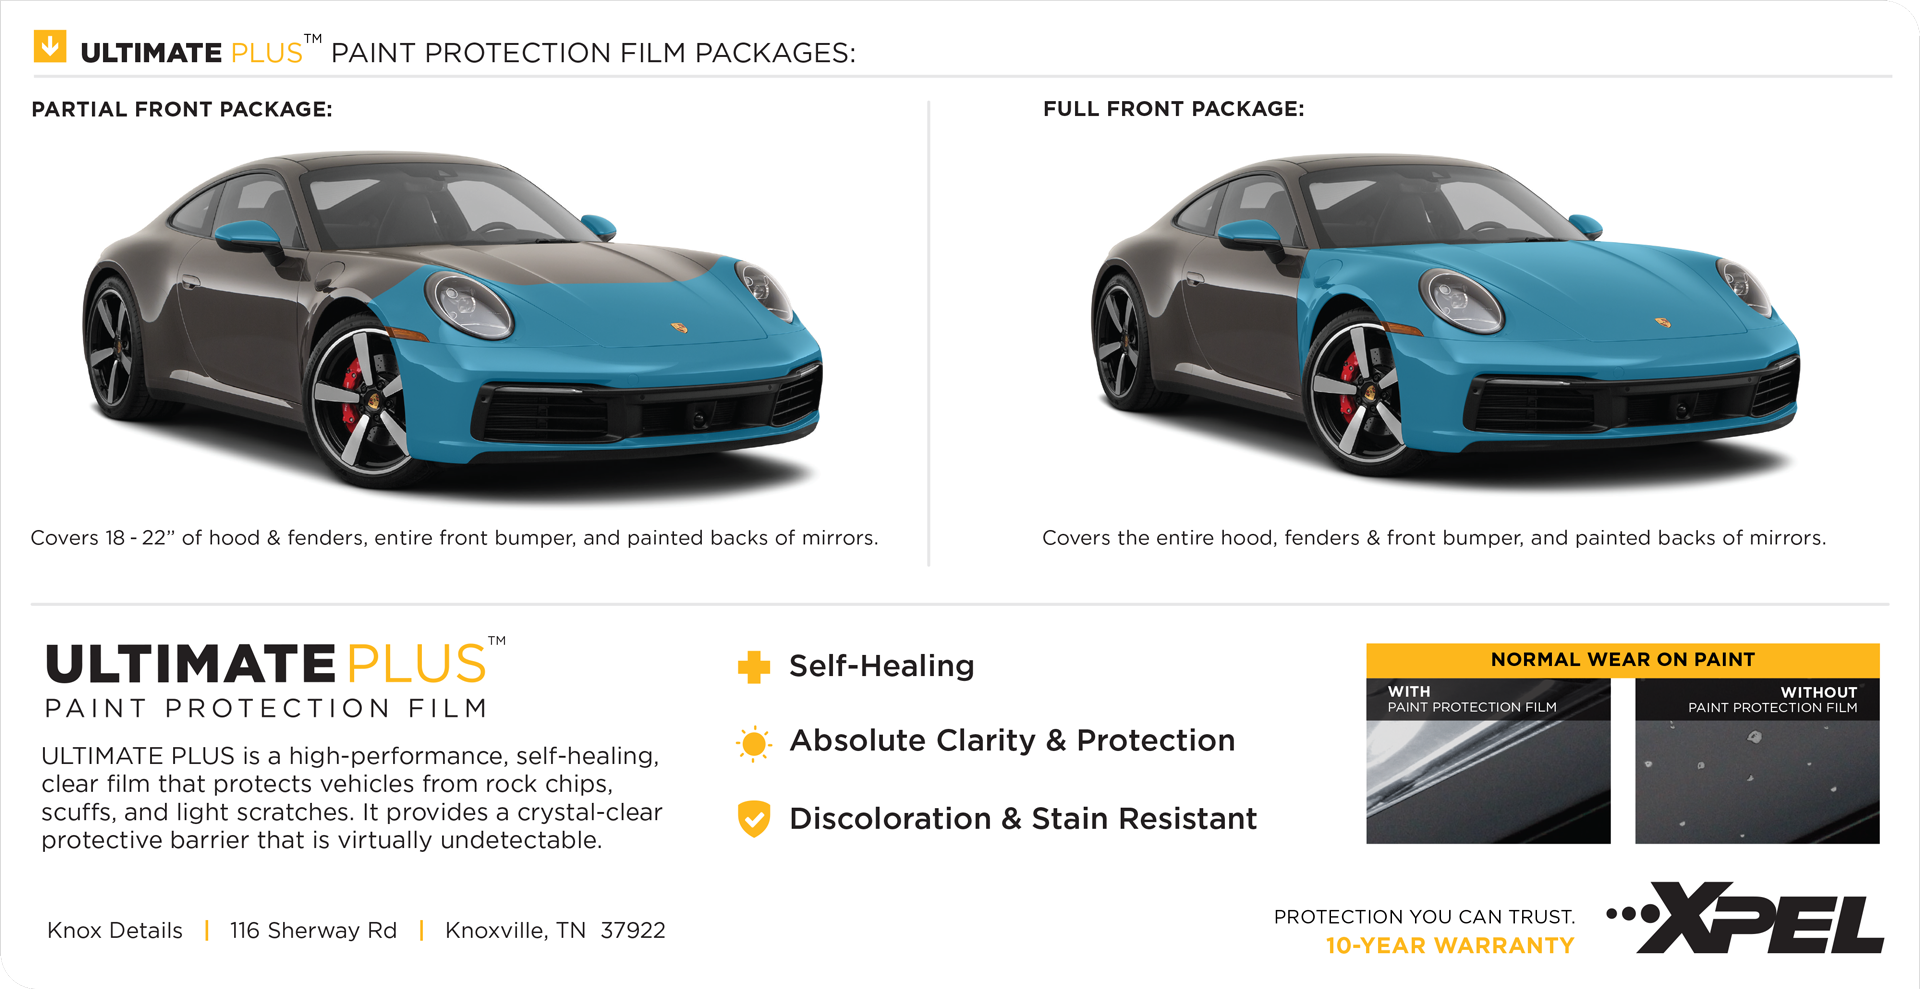 Xpel Ultimate Plus Paint Protection Film detail card